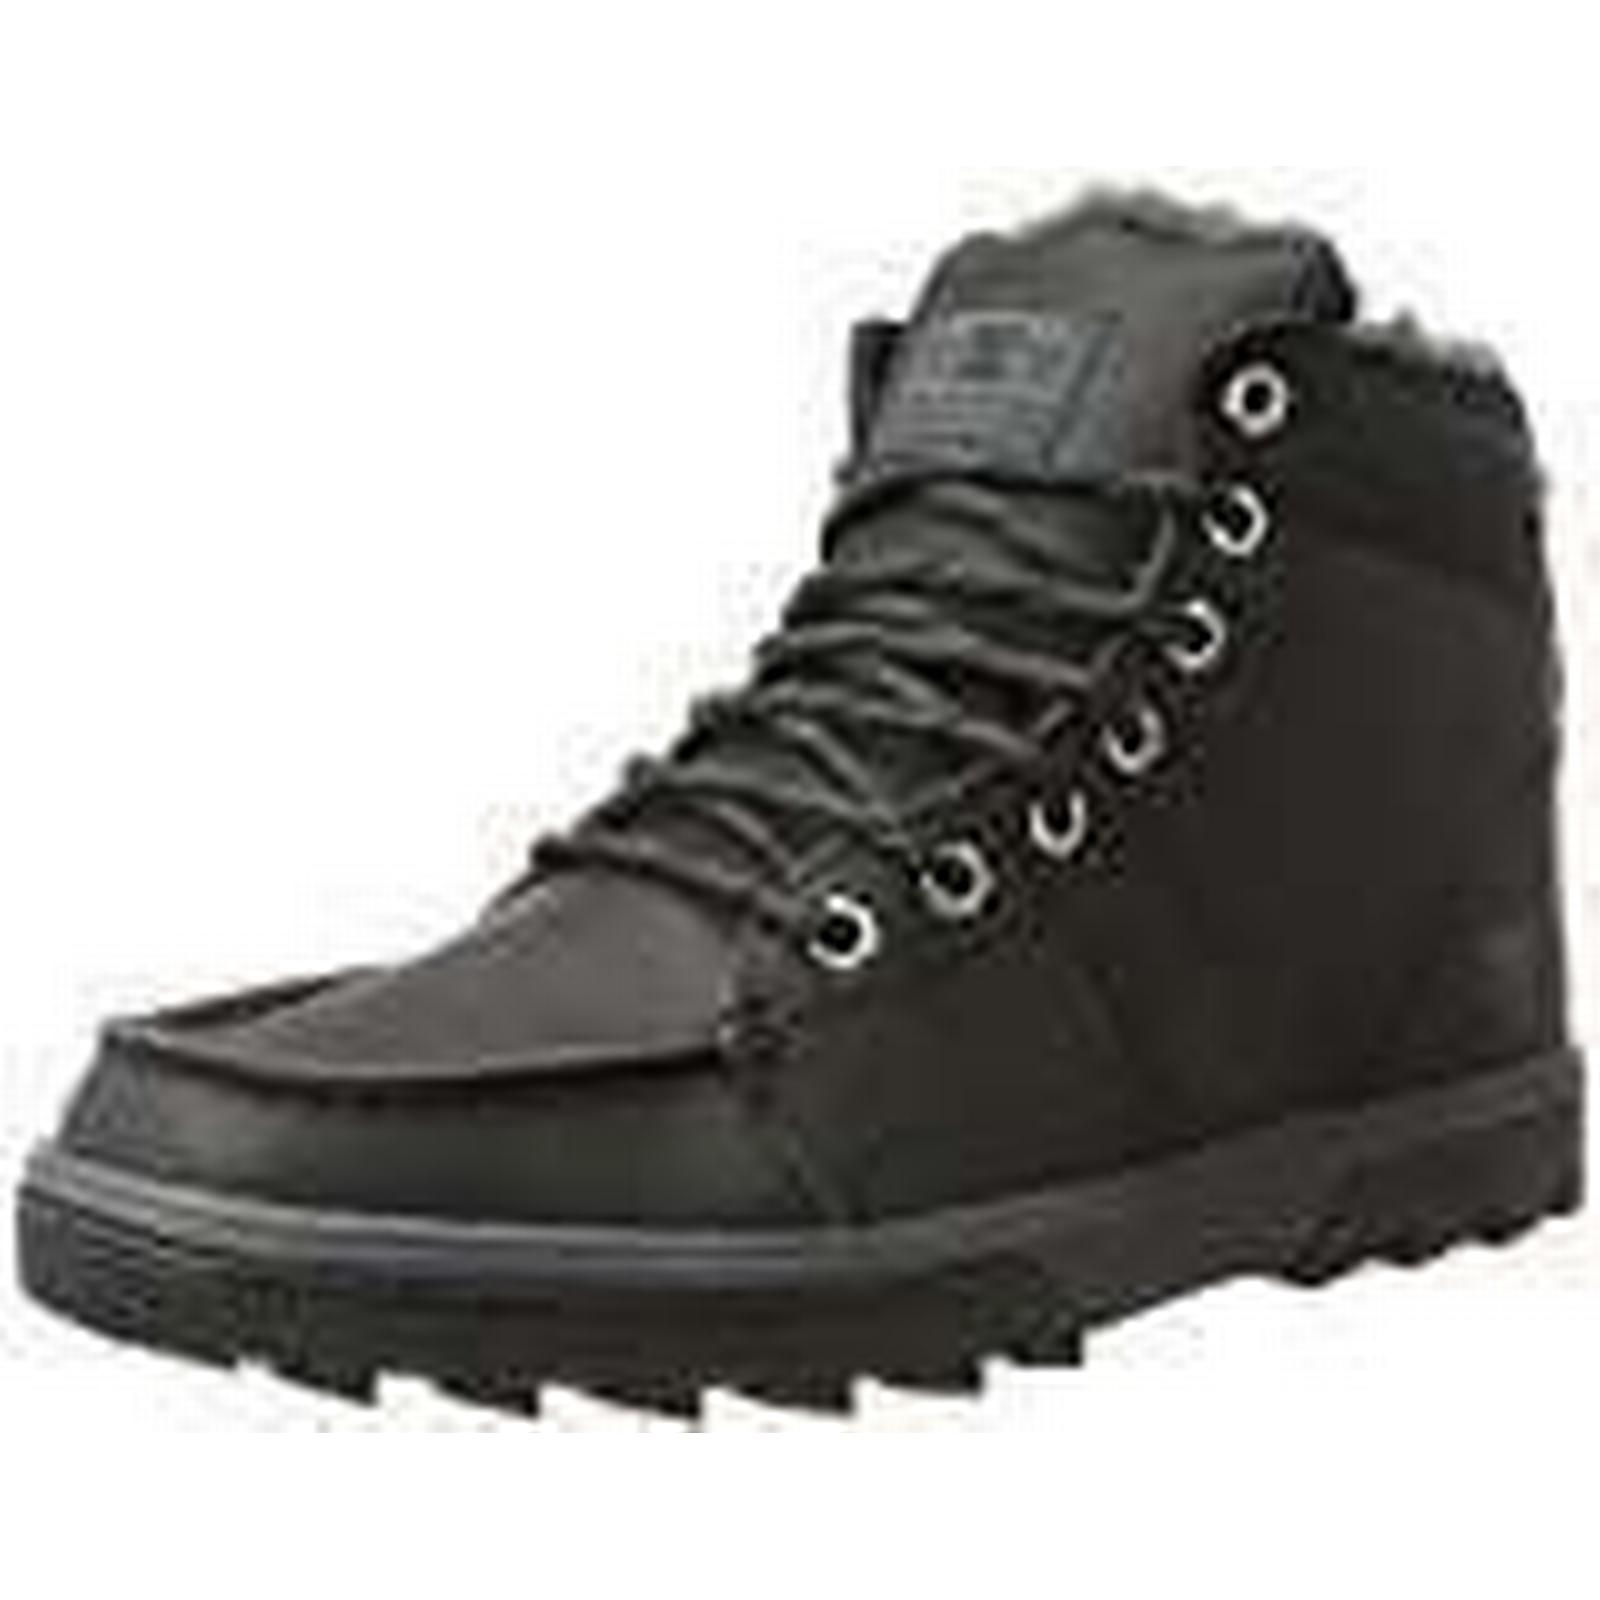 DC Classic Shoes Men''s Woodland Classic DC Boots, Black/Grey-Combo, 9.5 UK d45fa1